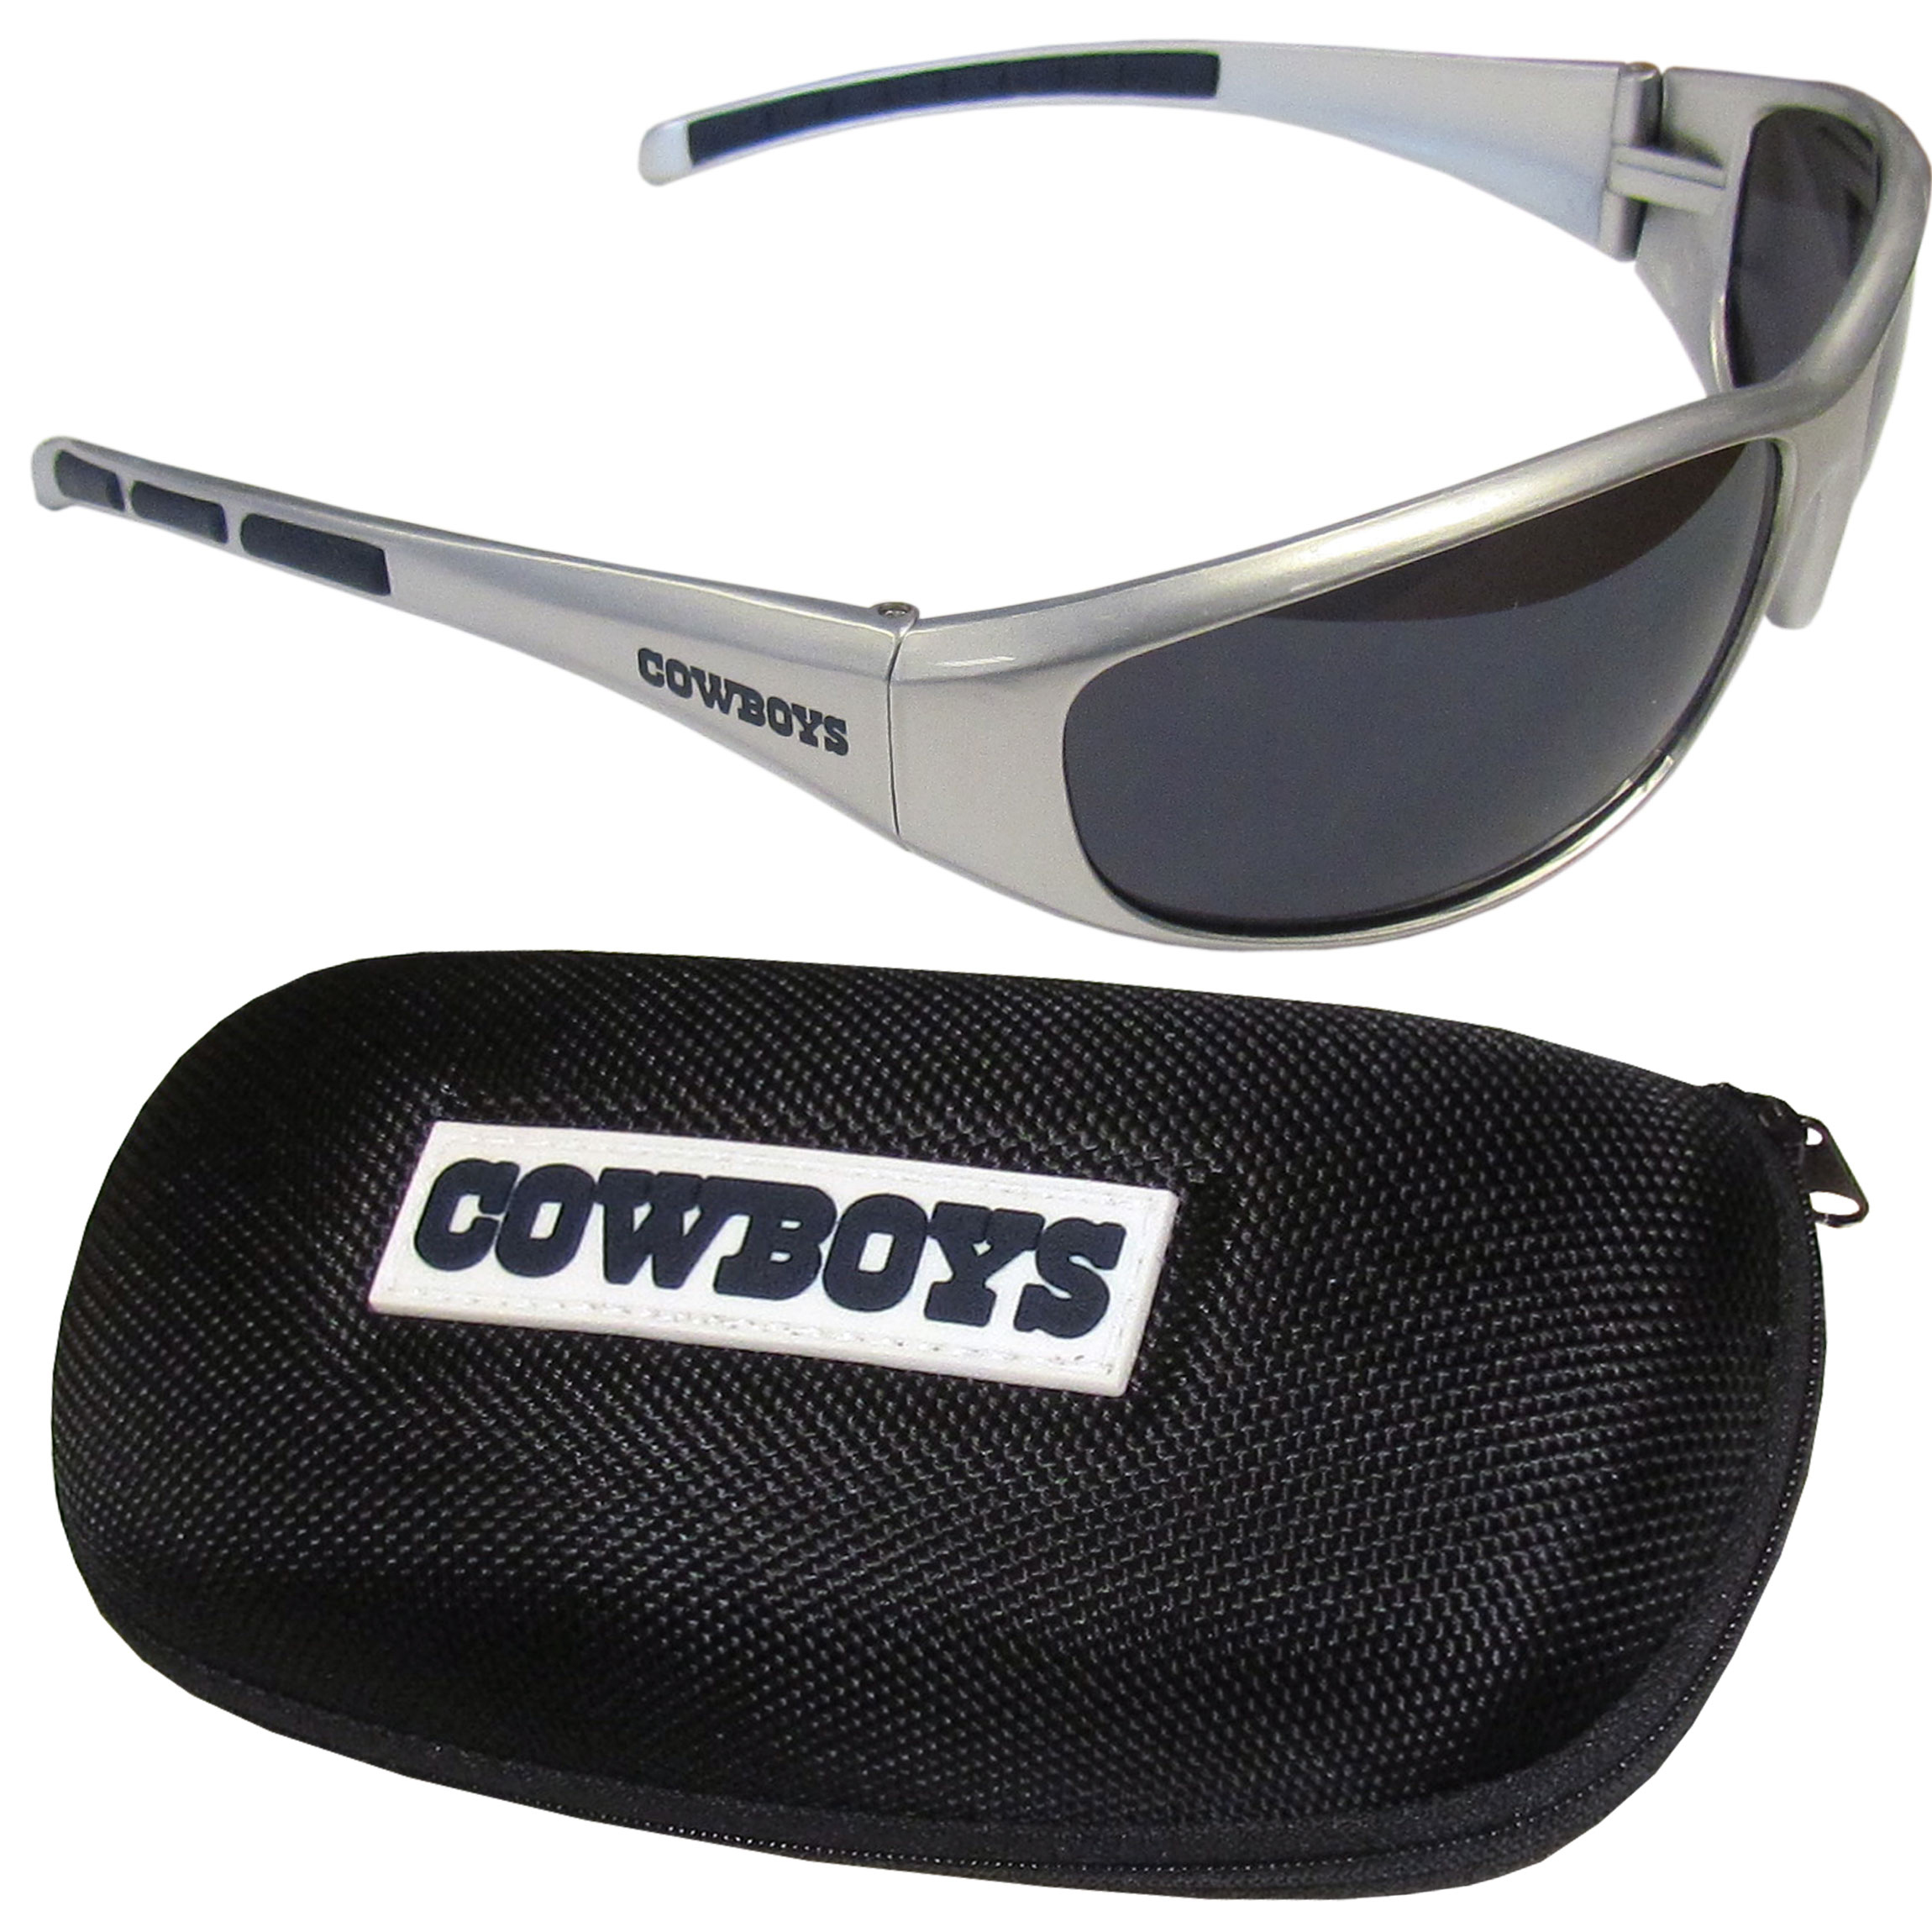 Dallas Cowboys Wrap Sunglass and Case Set - This great set includes a high quality pair of Dallas Cowboys wrap sunglasses and hard carrying case.